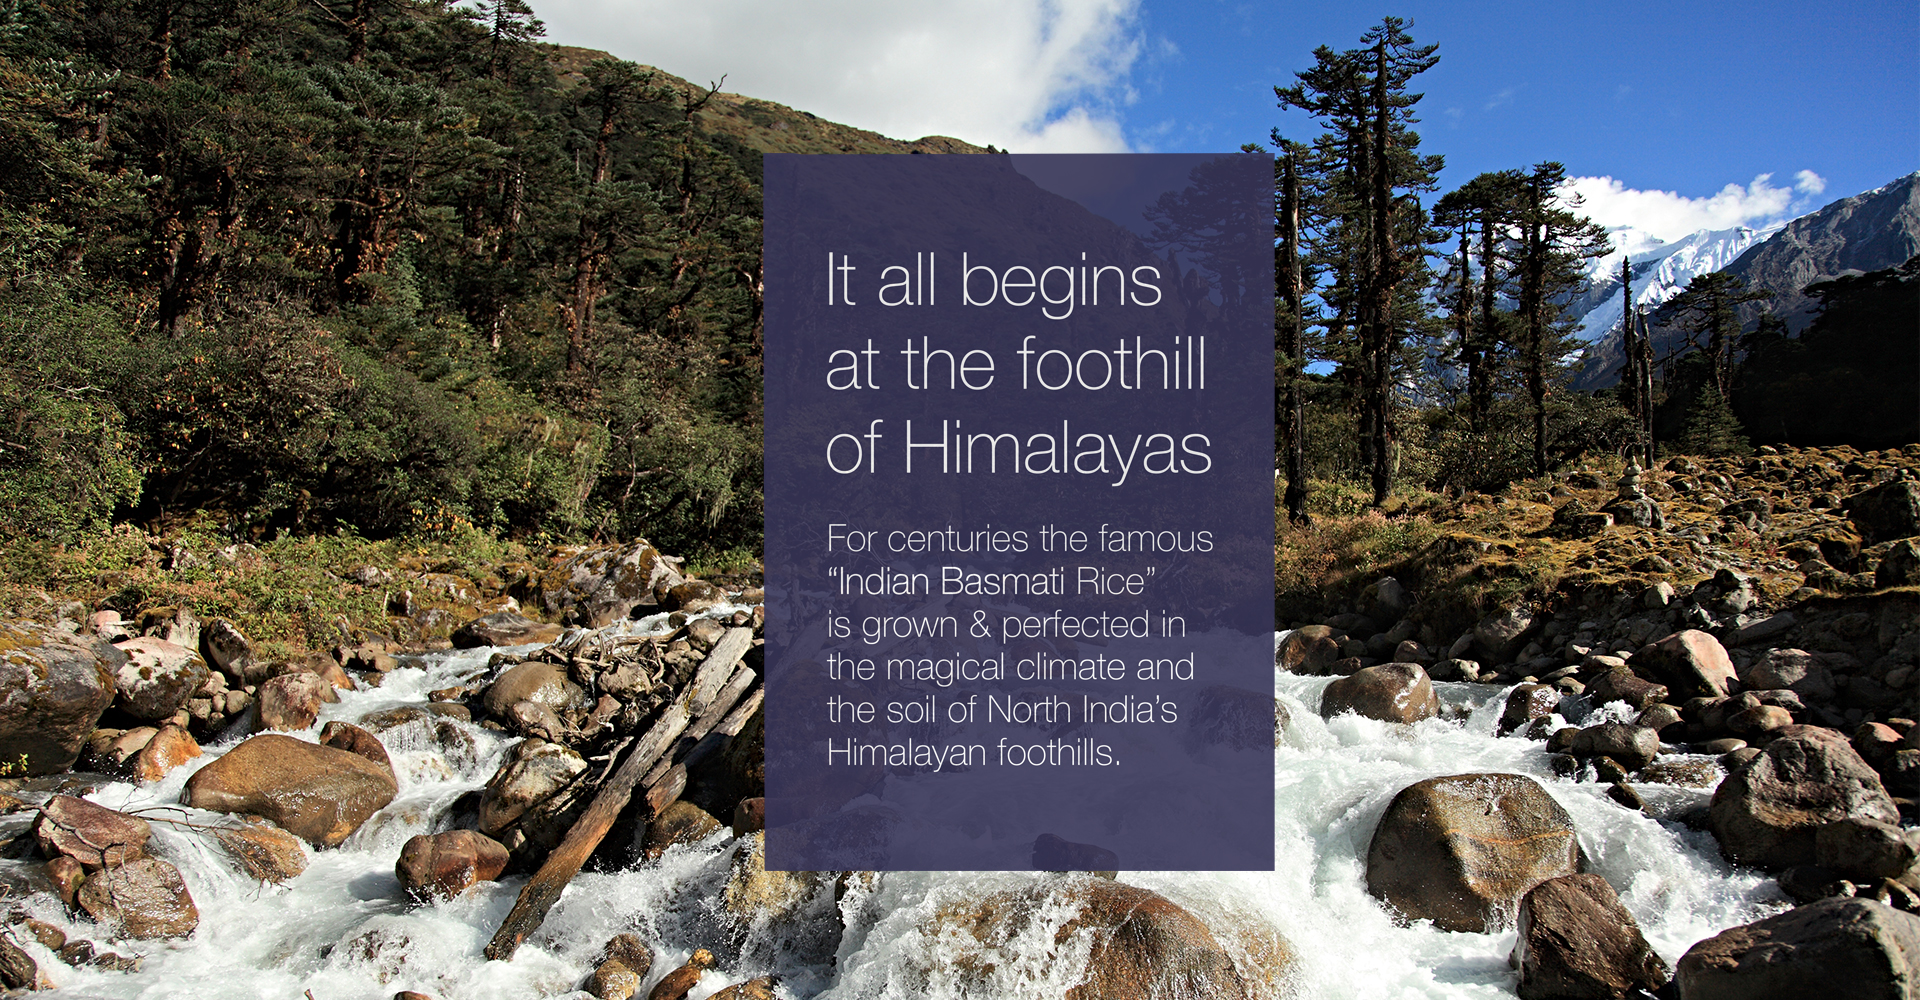 himalyas-foothills-rice